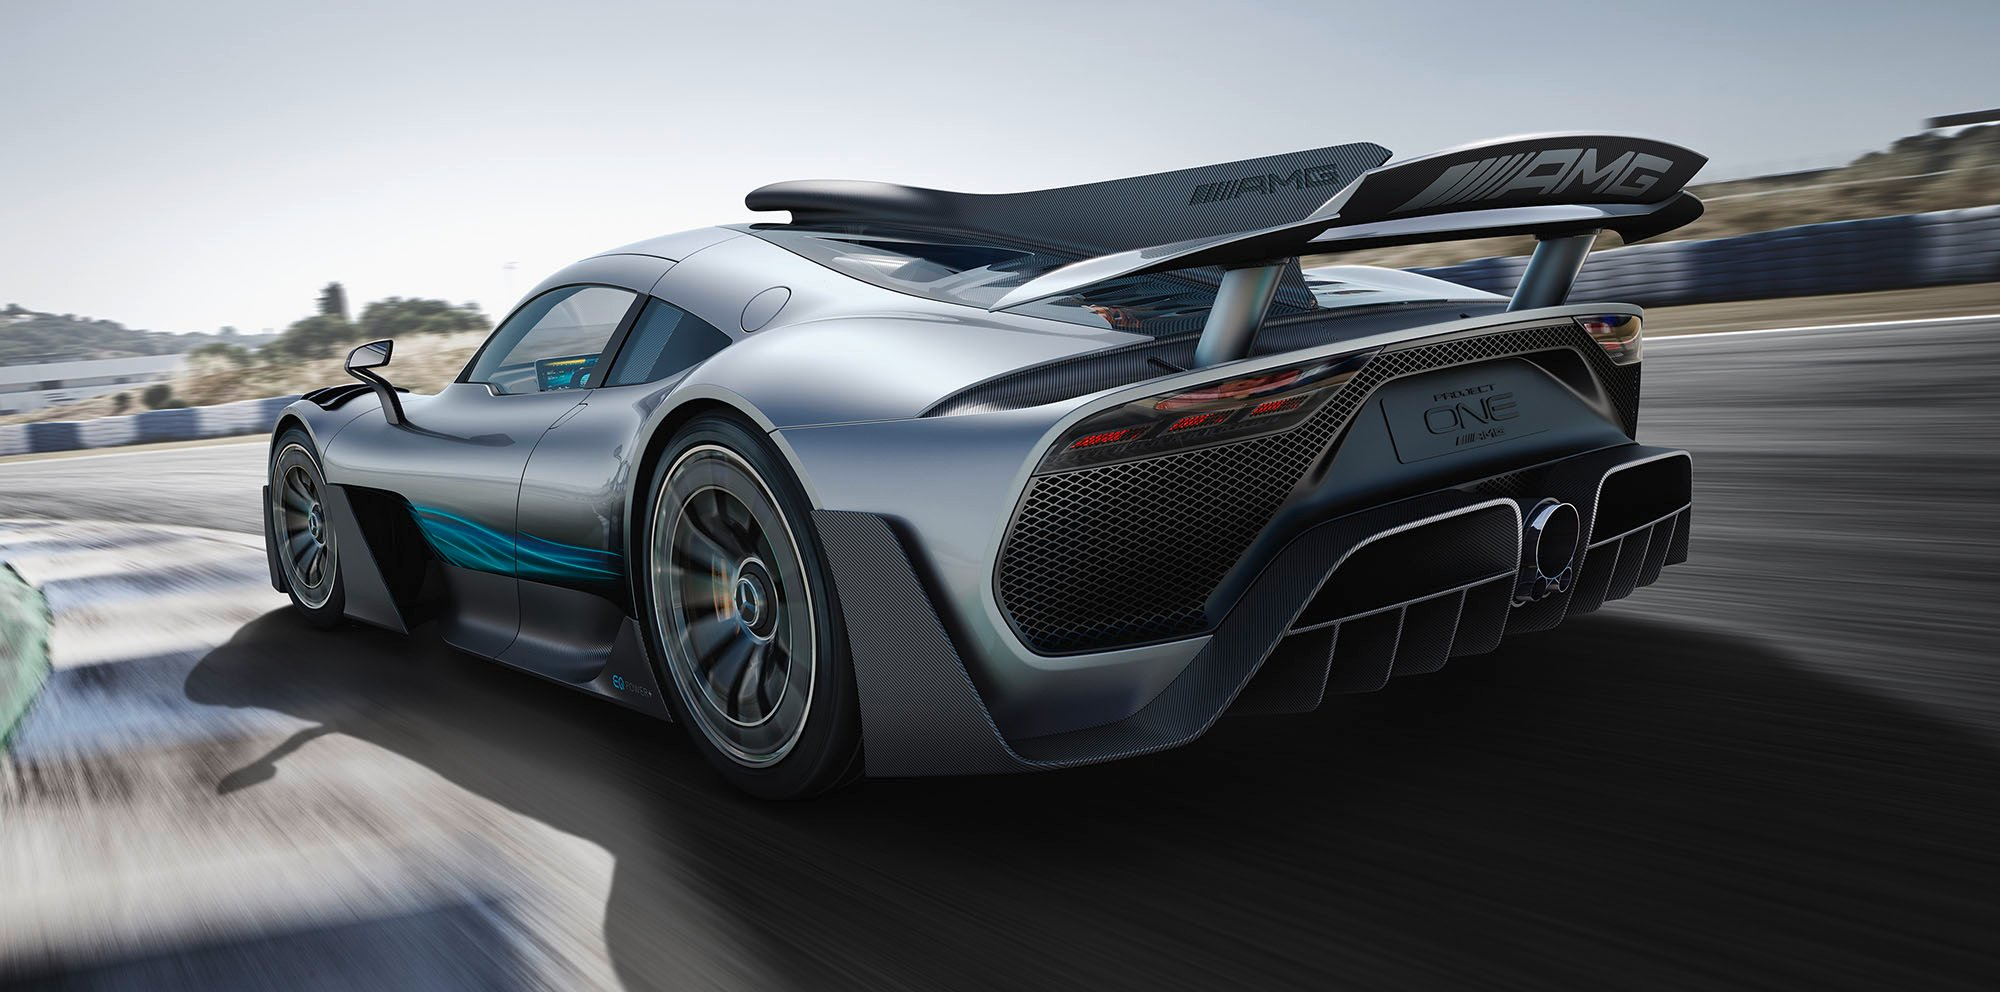 Amg project one and smart vision eq fortwo both show the for Mercedes benz project one